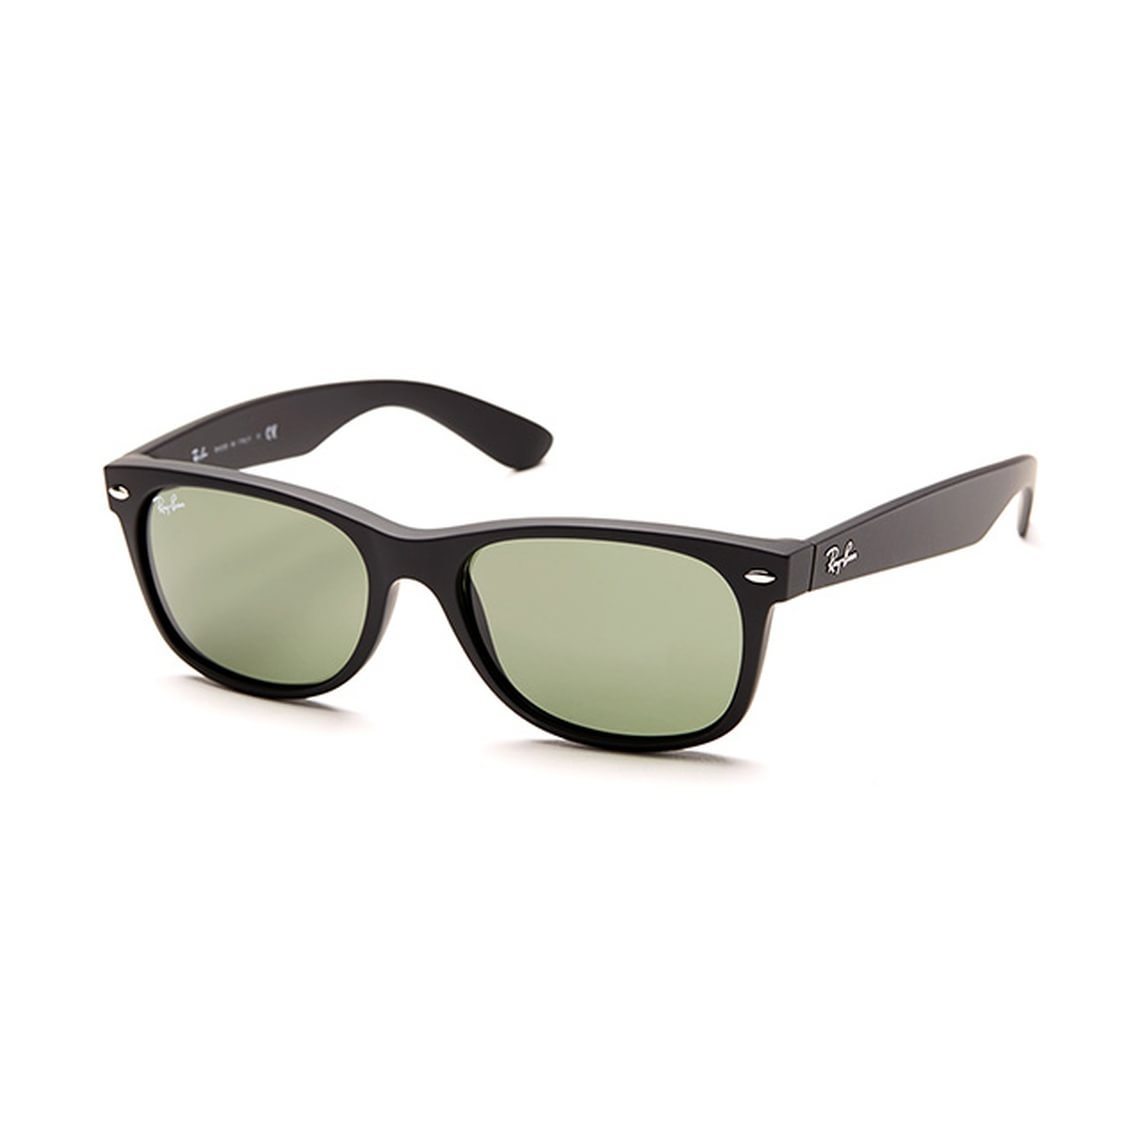 Ray-Ban New Wayfarer RB2132 622 55